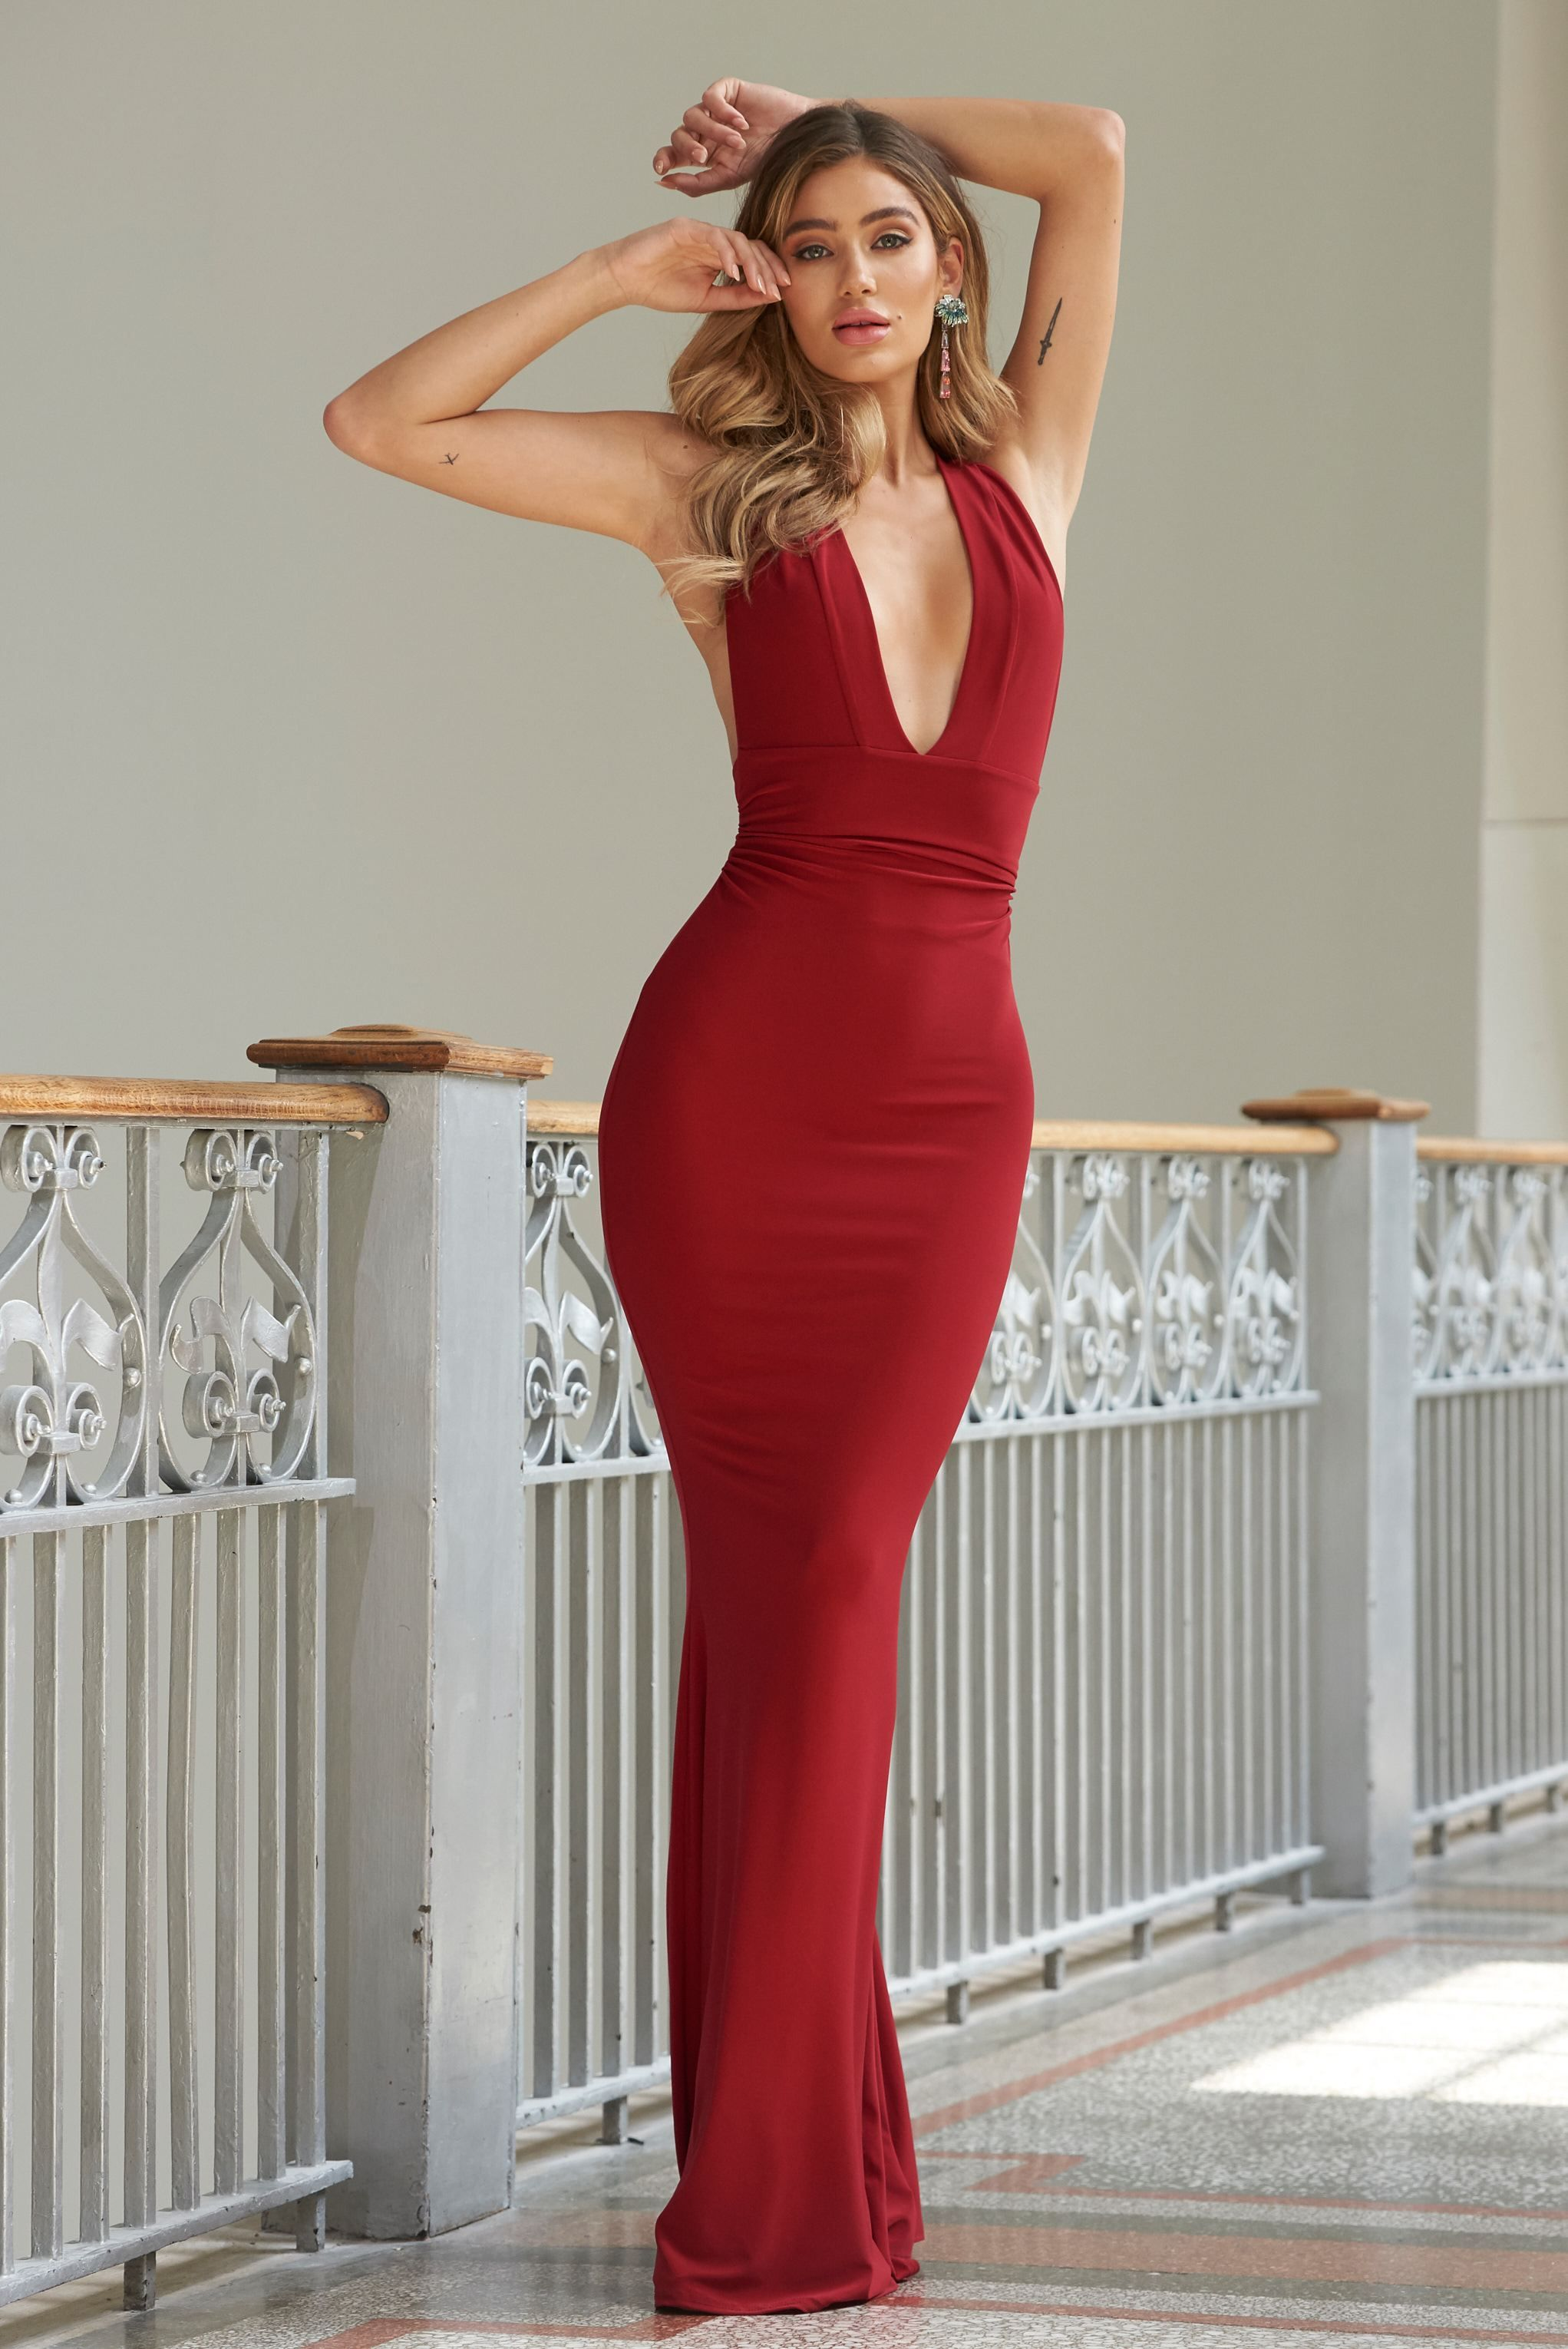 d8ef5469a2a9 Red Strappy Cross Back Fishtail Maxi Dress in 2019   prom dresses ...